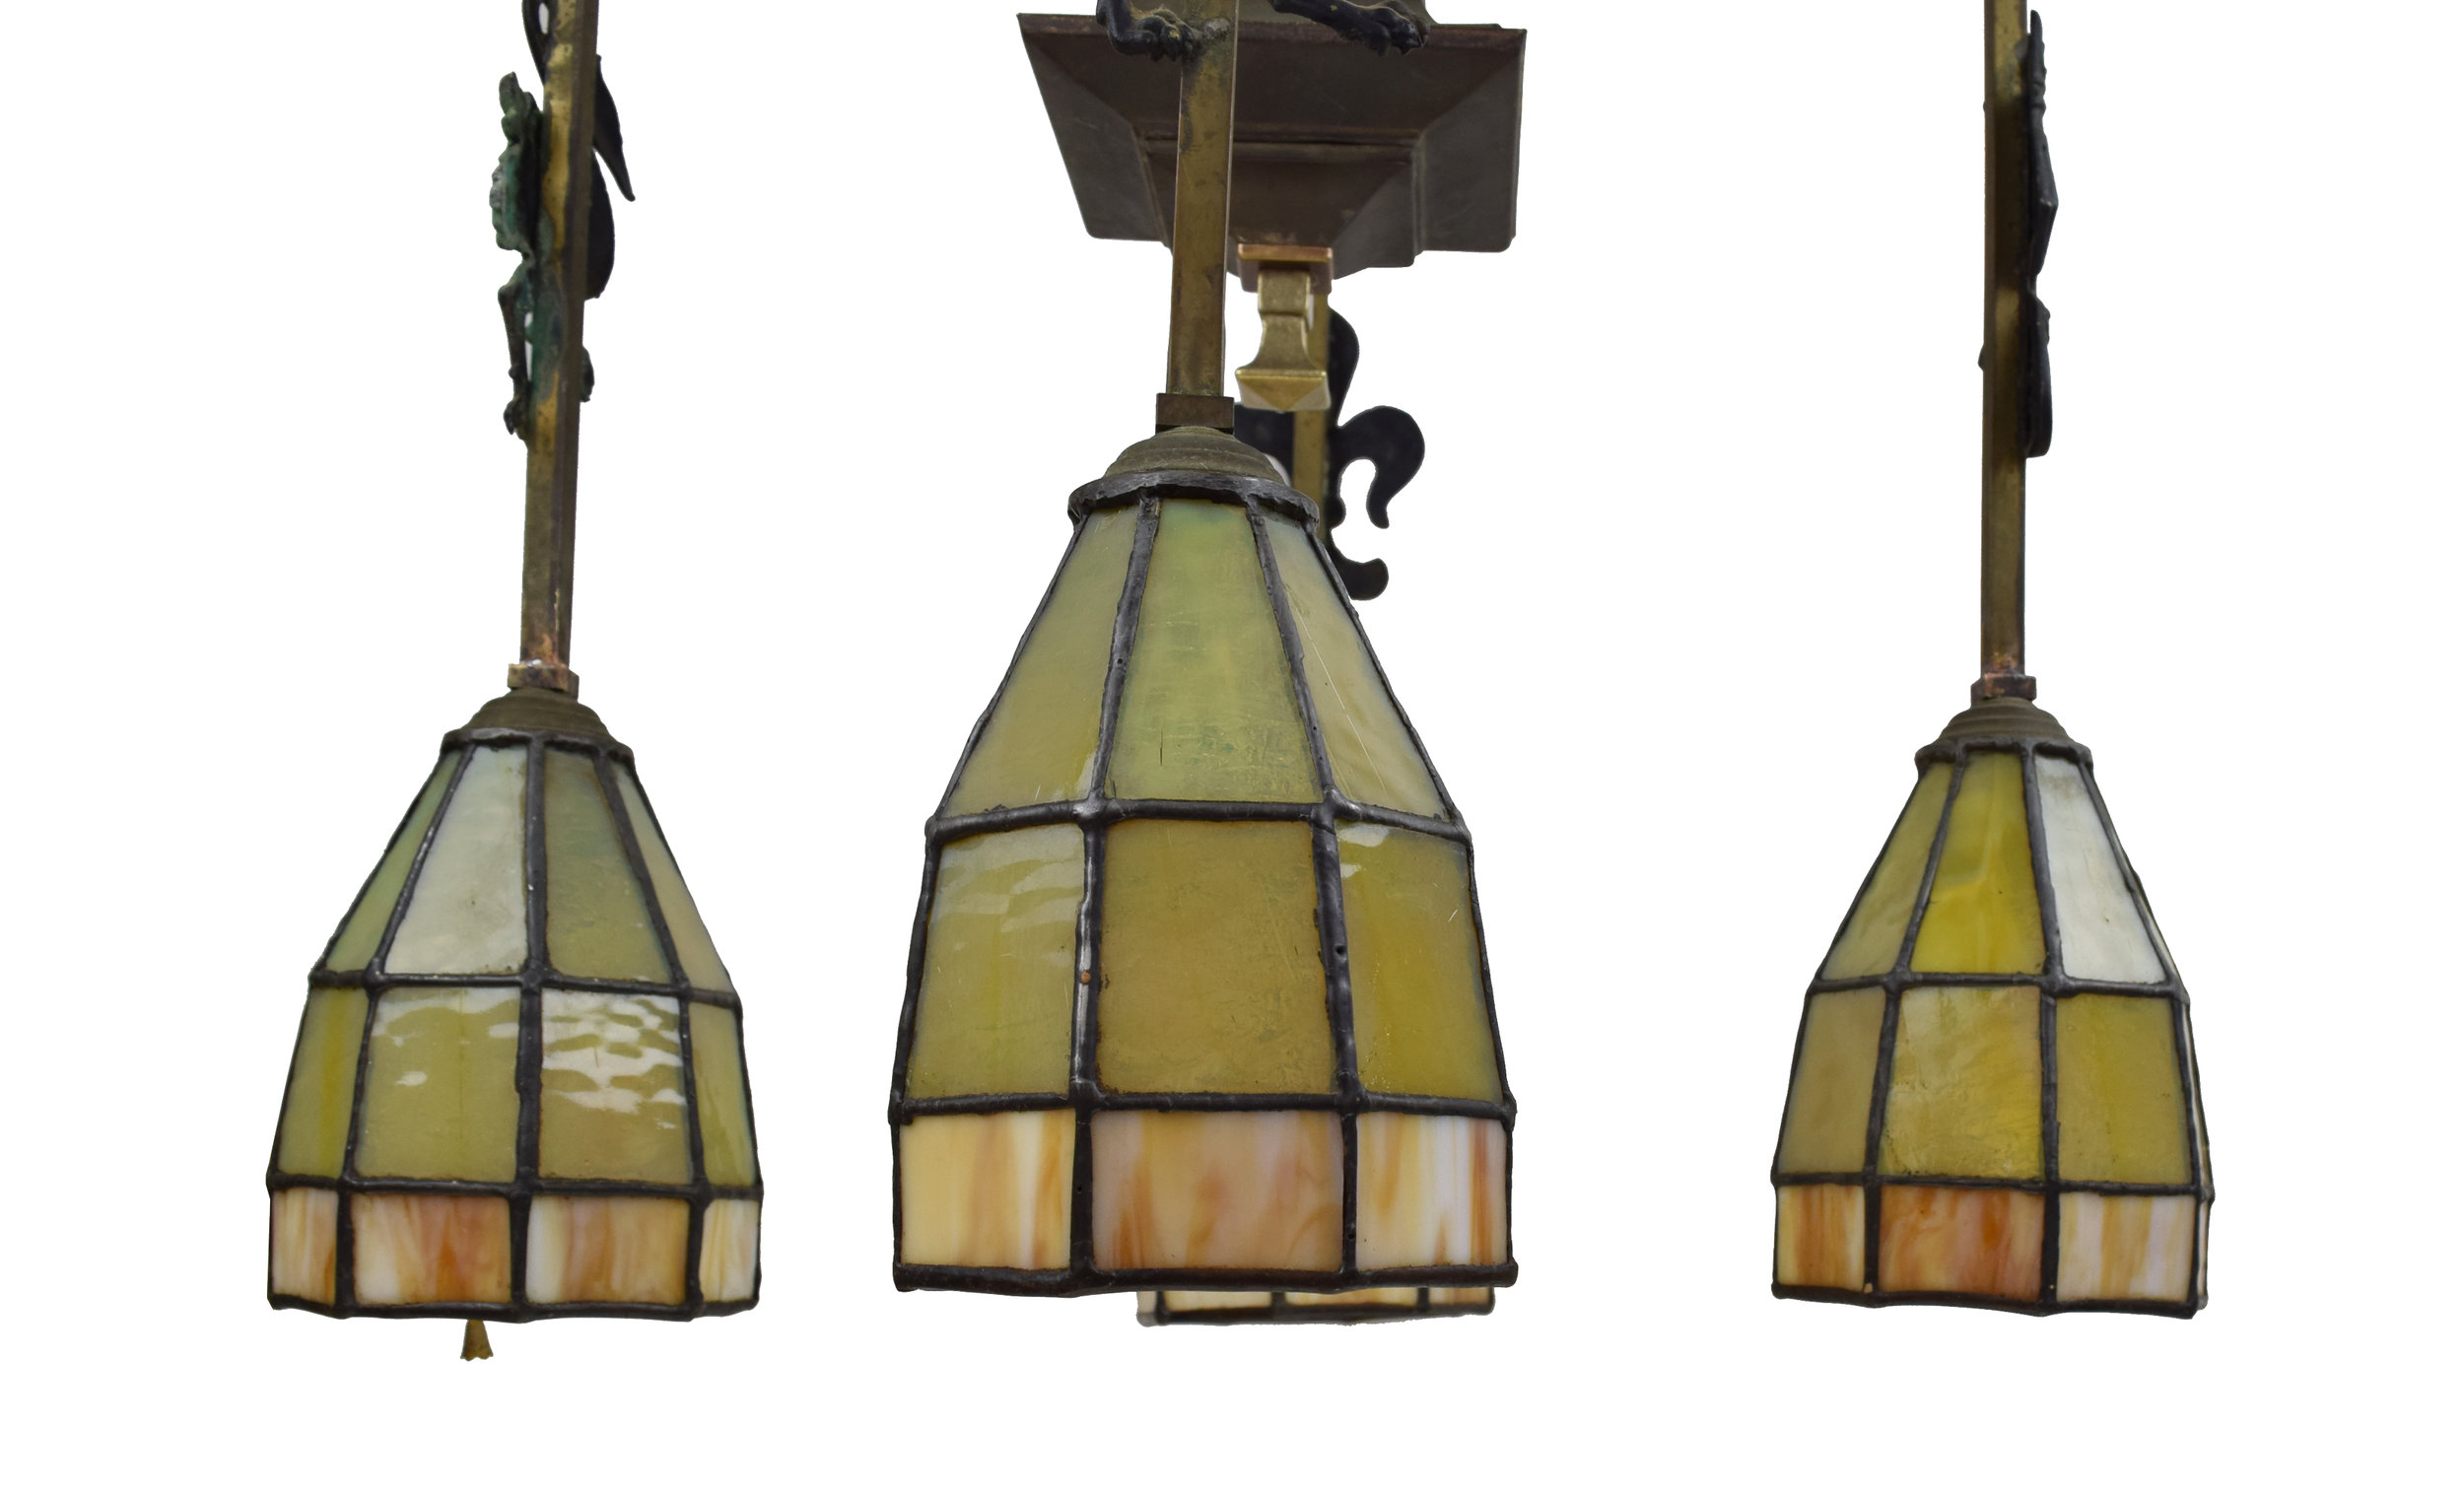 Architectural Antique's Gothic Arts & Crafts Chandelier with Leaded Glass Shades